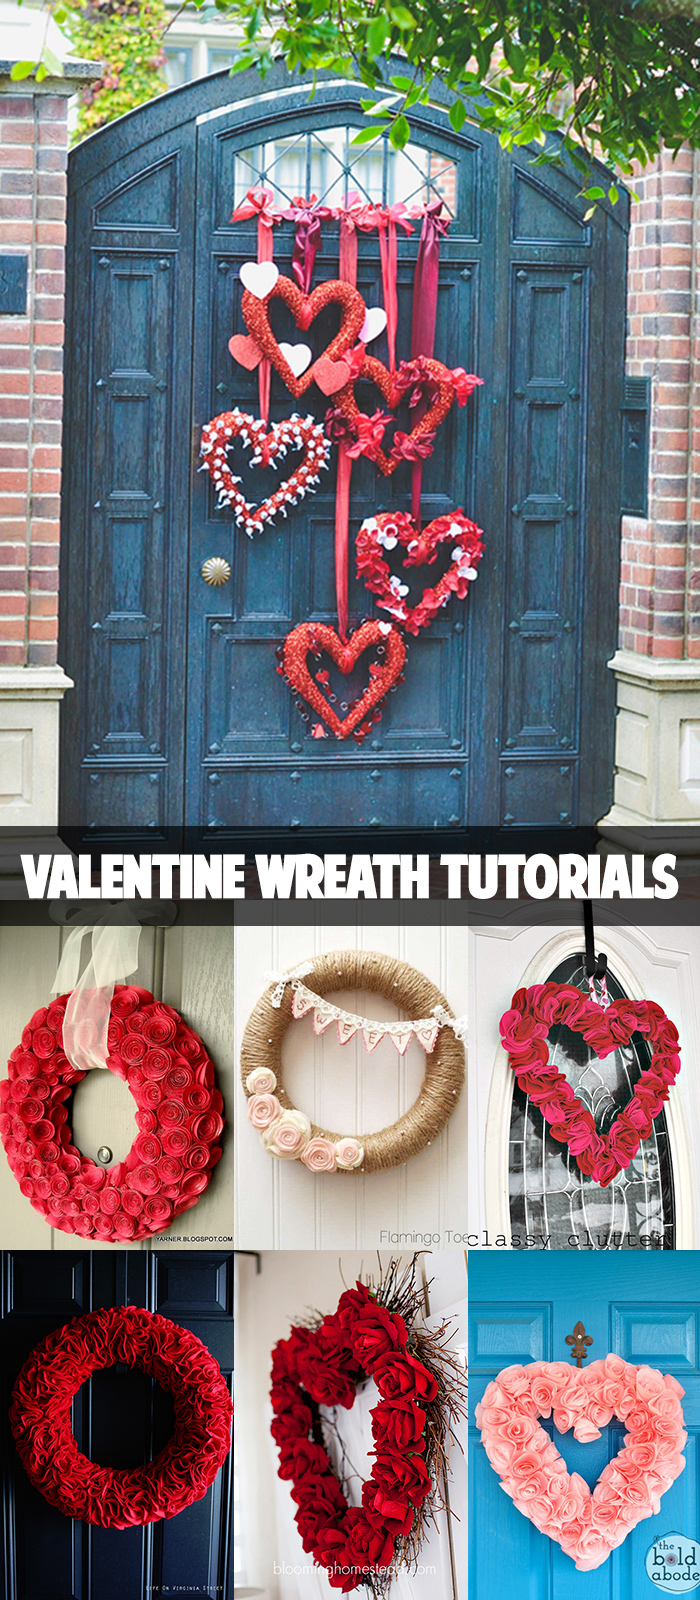 Valentine wreath tutorials